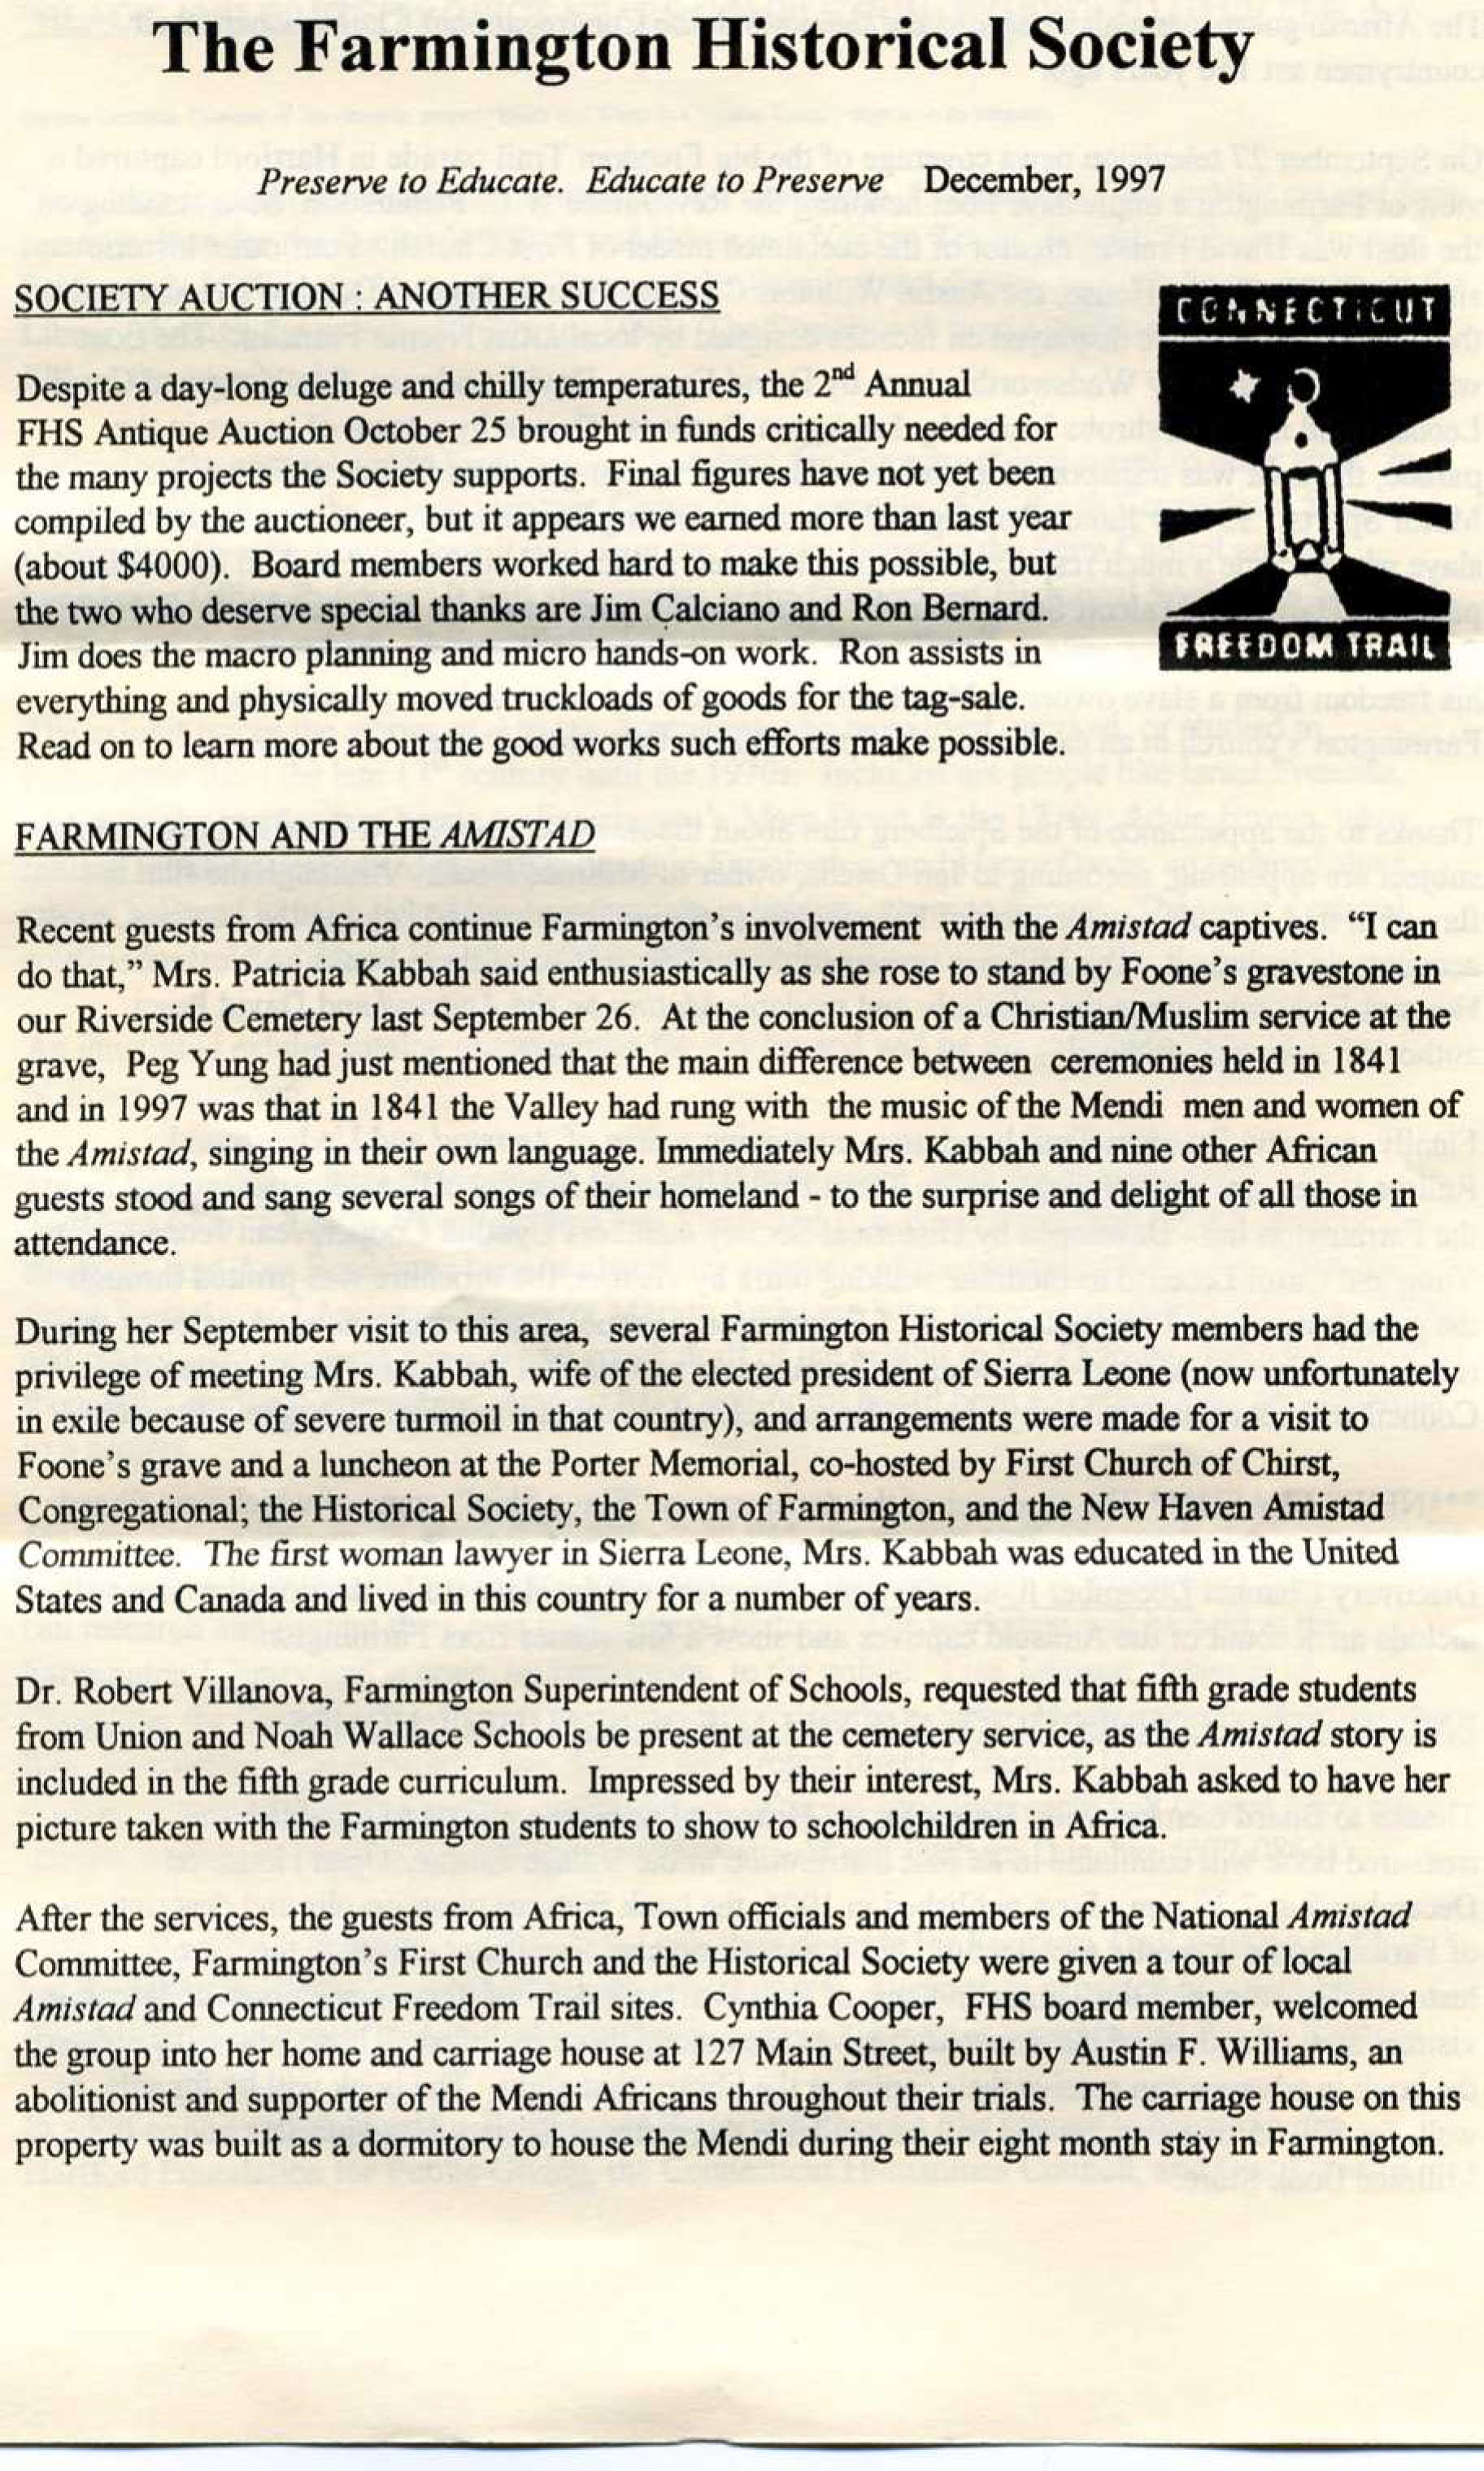 http://fhs-ct.org/1997/12/10/december-1997-newsletter-2/